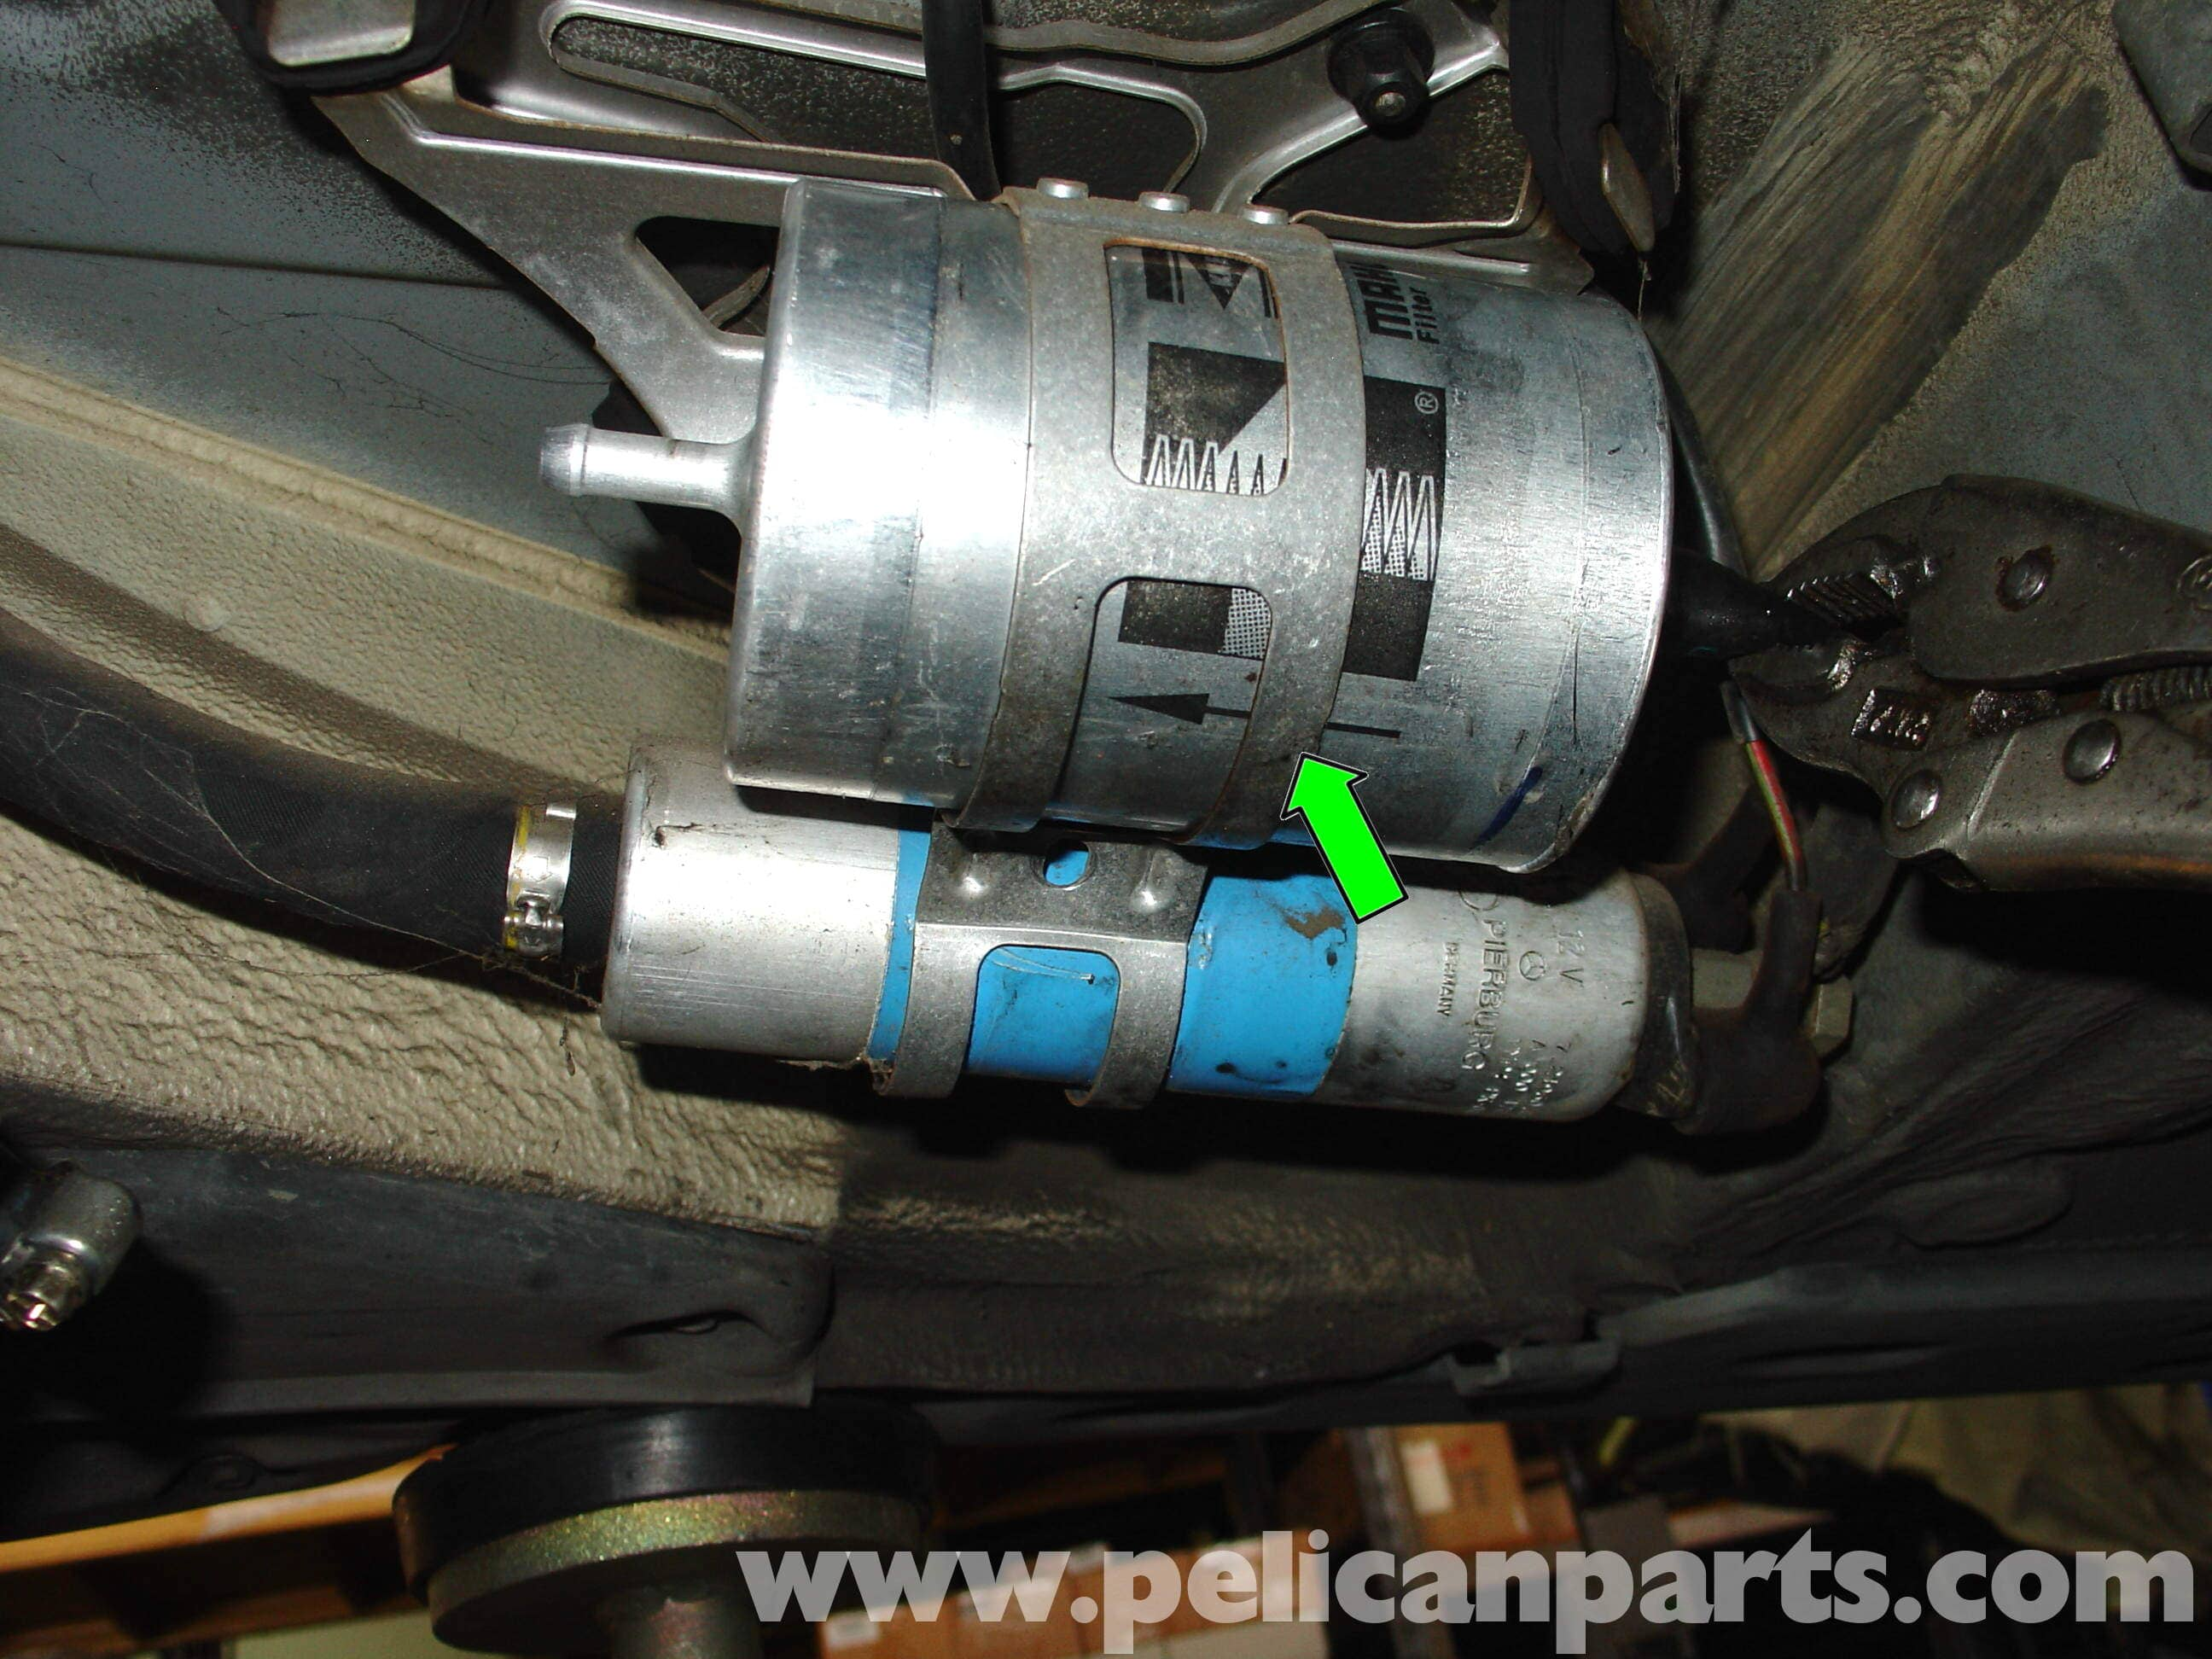 03 Altima Fuel Filter Wiring Library 2005 Audi A6 Pump Relay Location Large Image Extra Mercedes Benz W210 Replacement